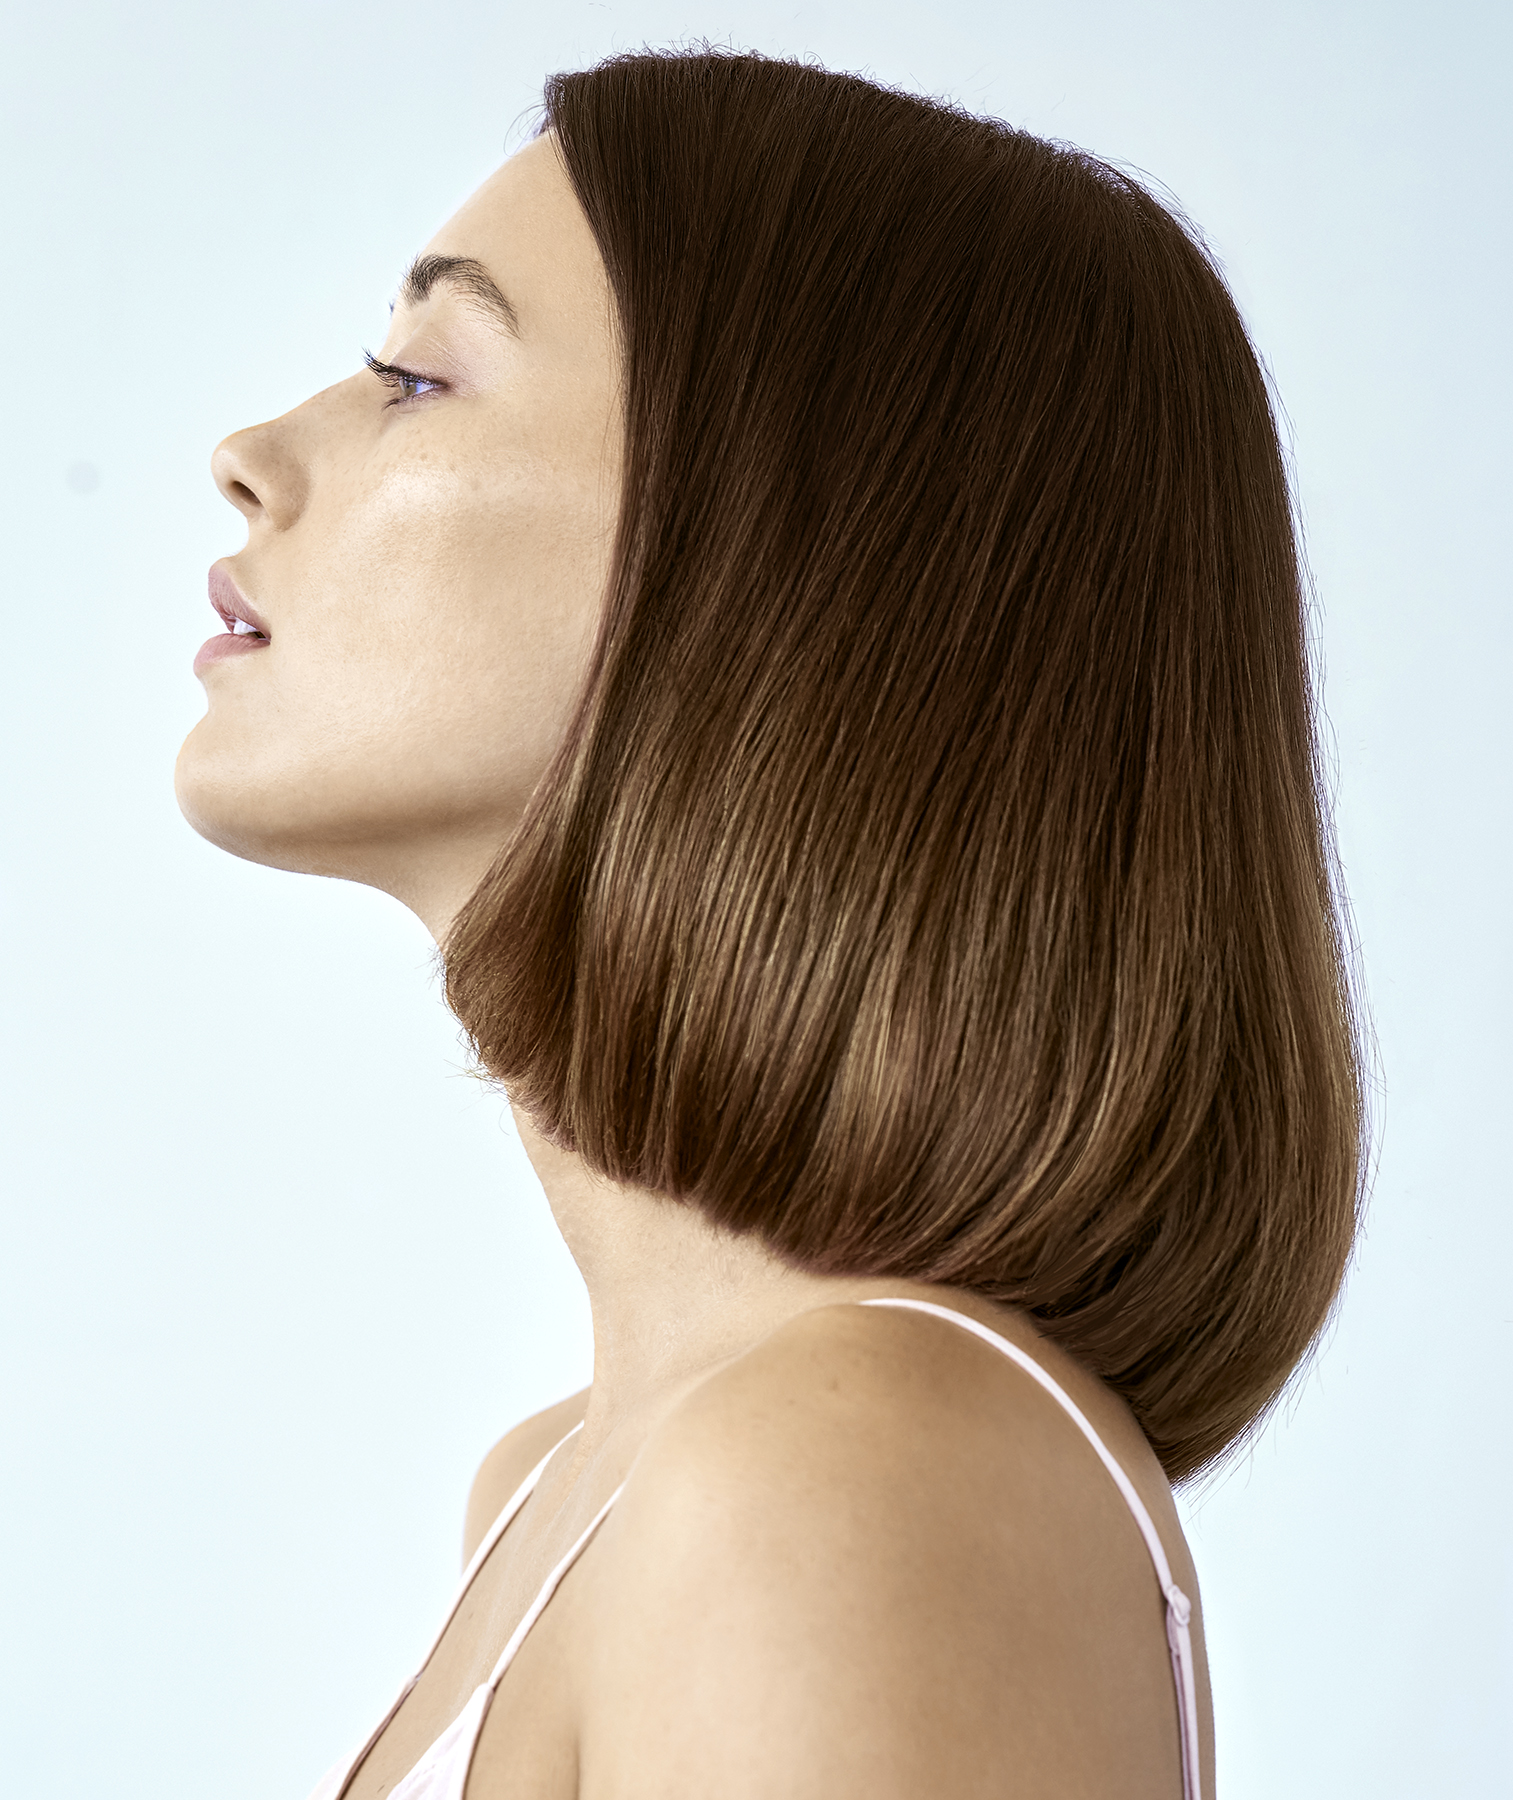 Short hair styled into a sleek blowout